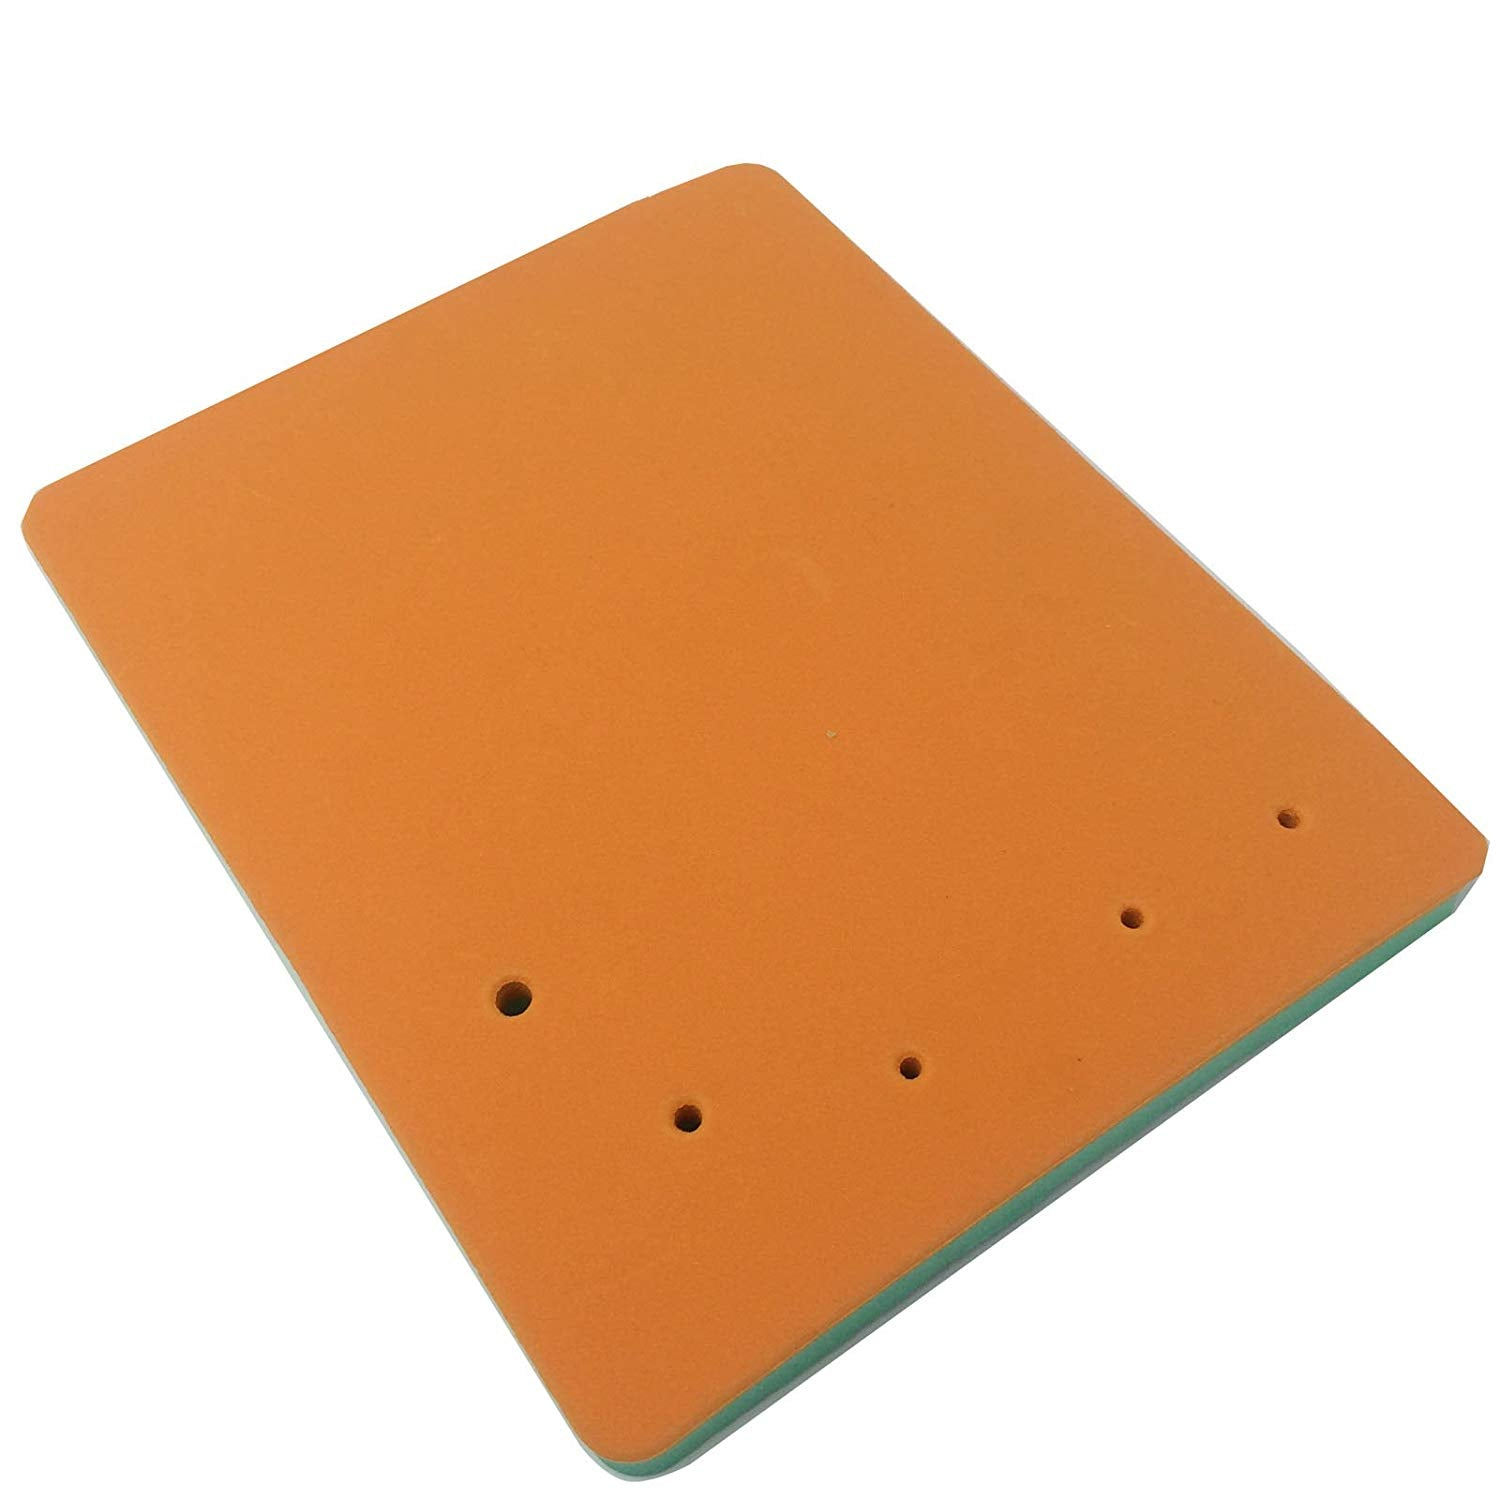 Fondant Foam Pad with Holes